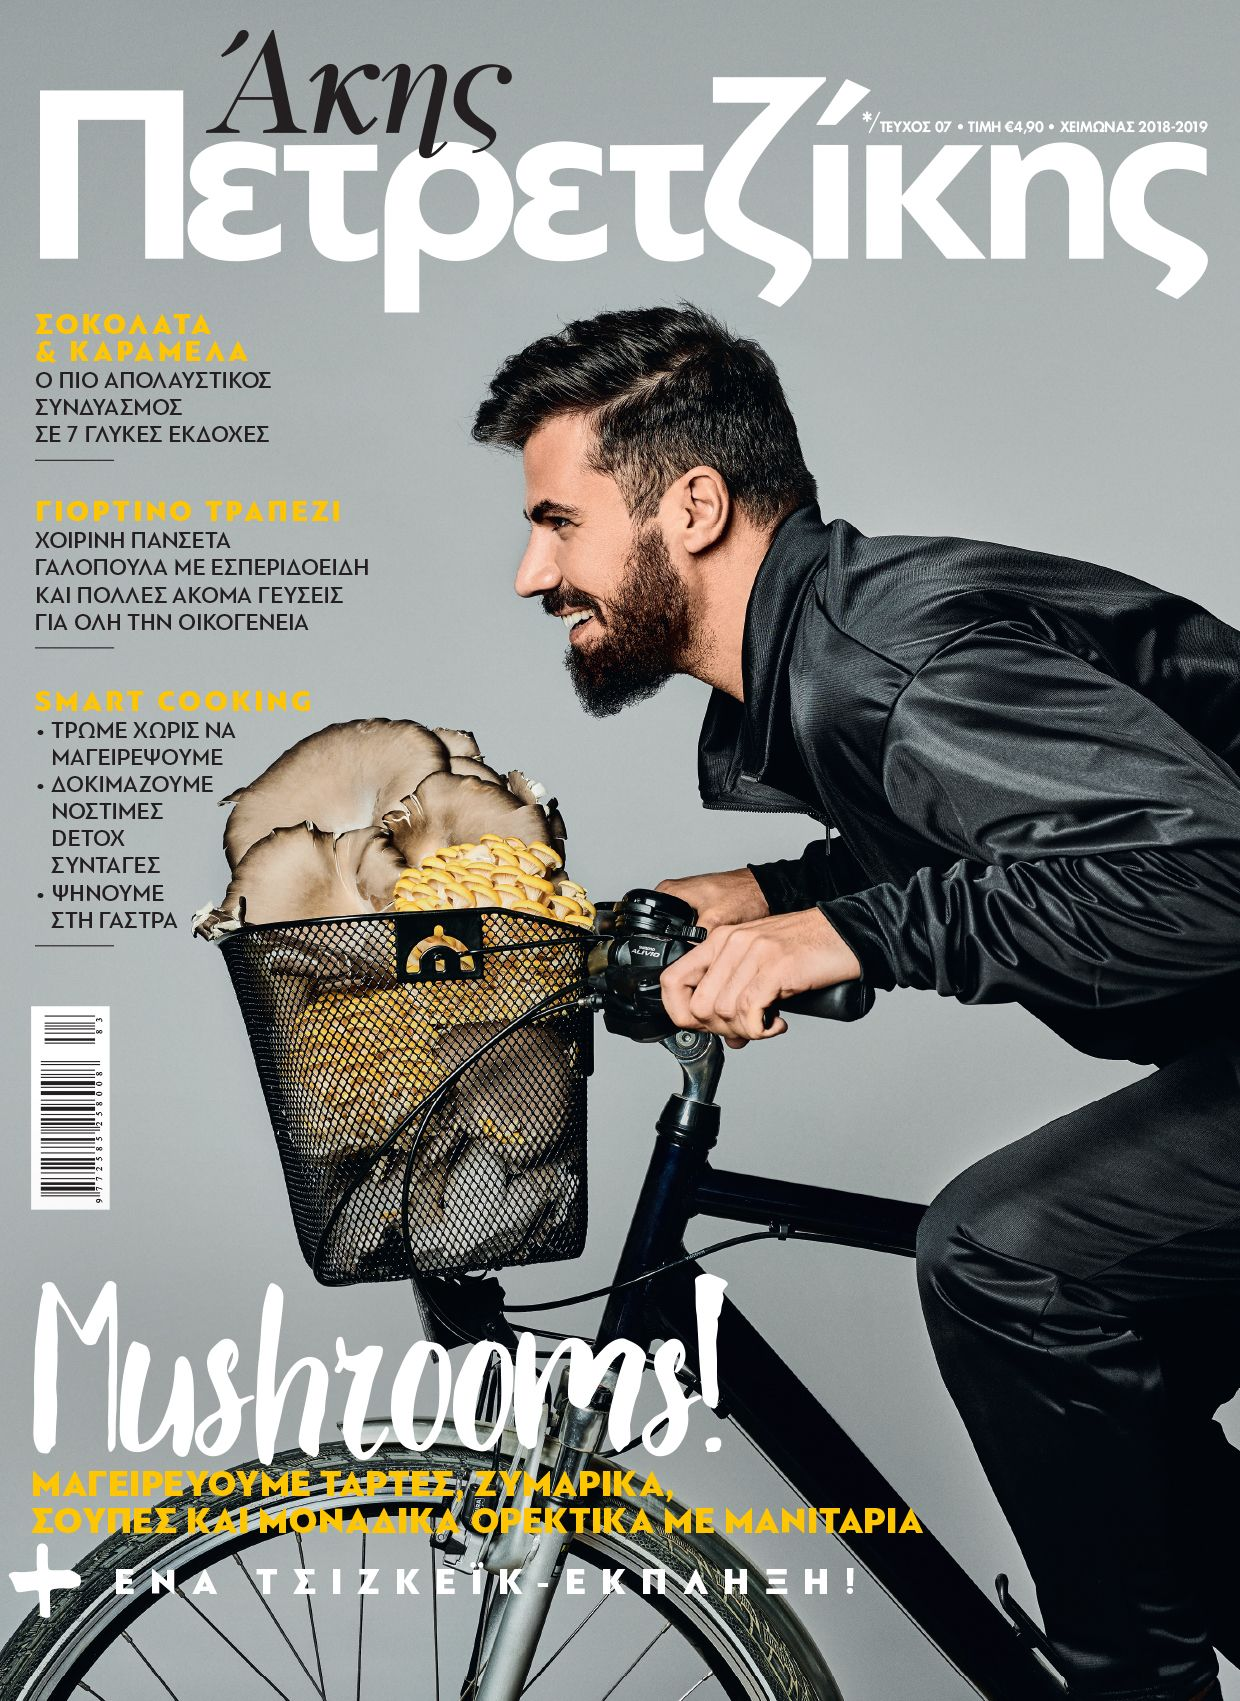 Akis petretzikis winter issue